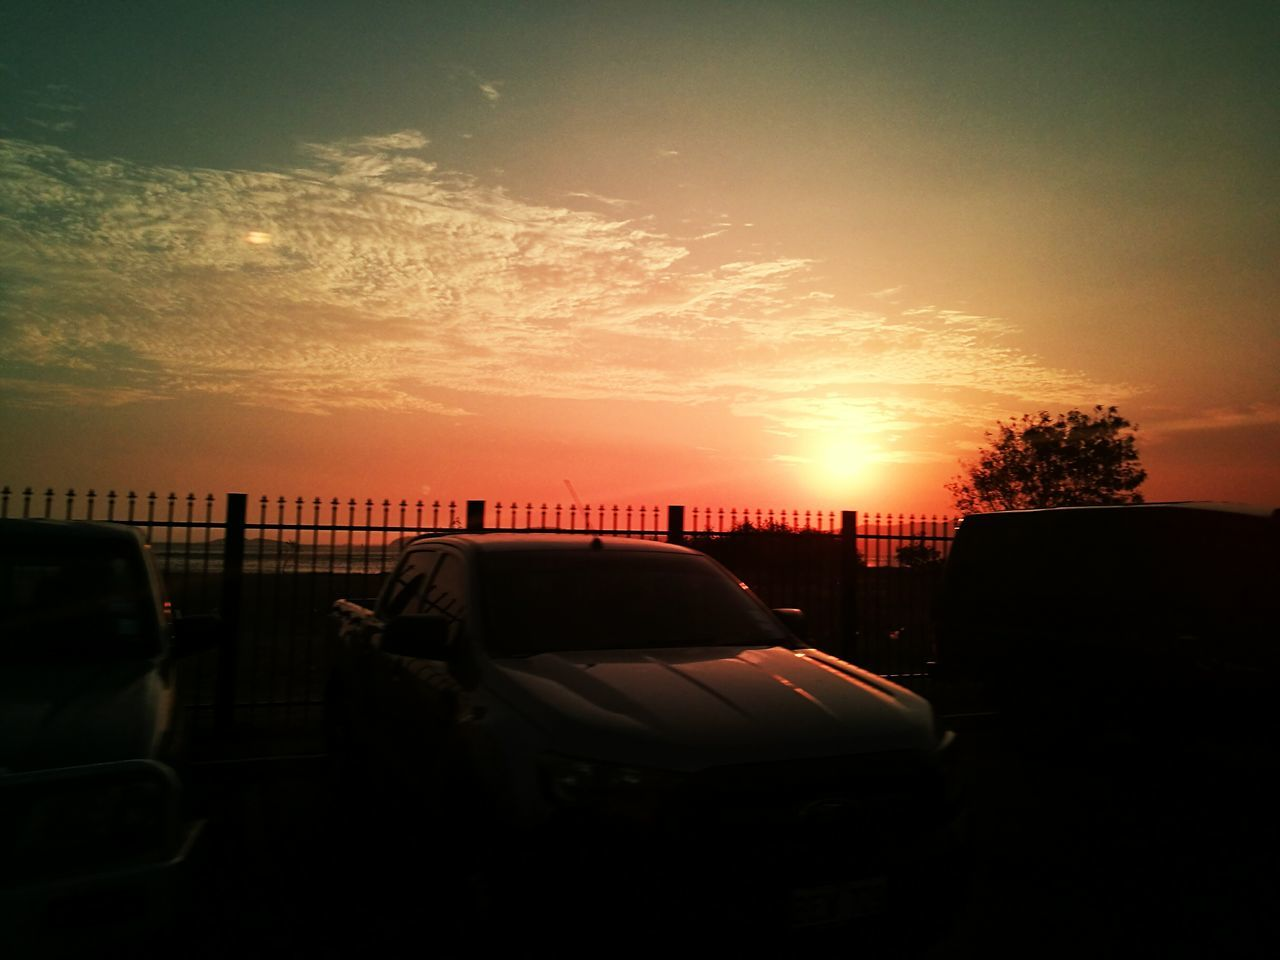 car, sunset, land vehicle, transportation, mode of transport, sky, silhouette, no people, outdoors, tree, day